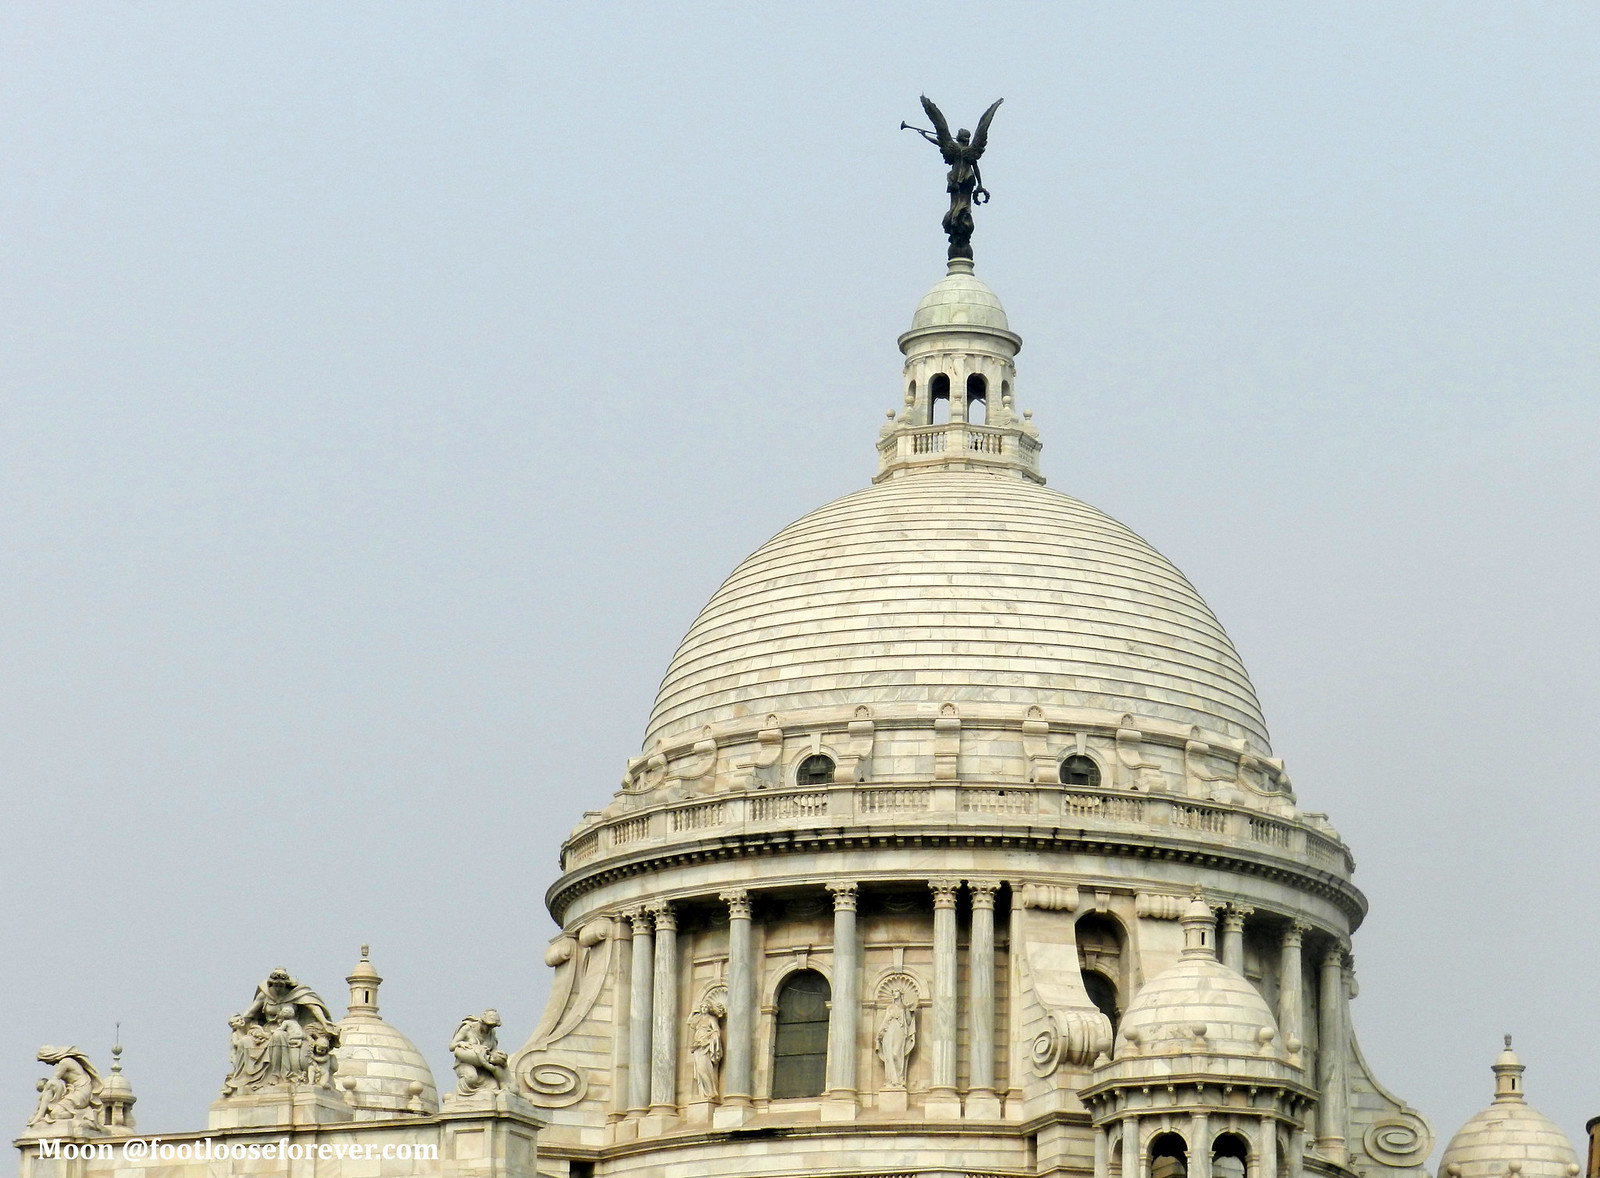 victoria memorial hall, architecture, marble, memorial, kolkata, heritage